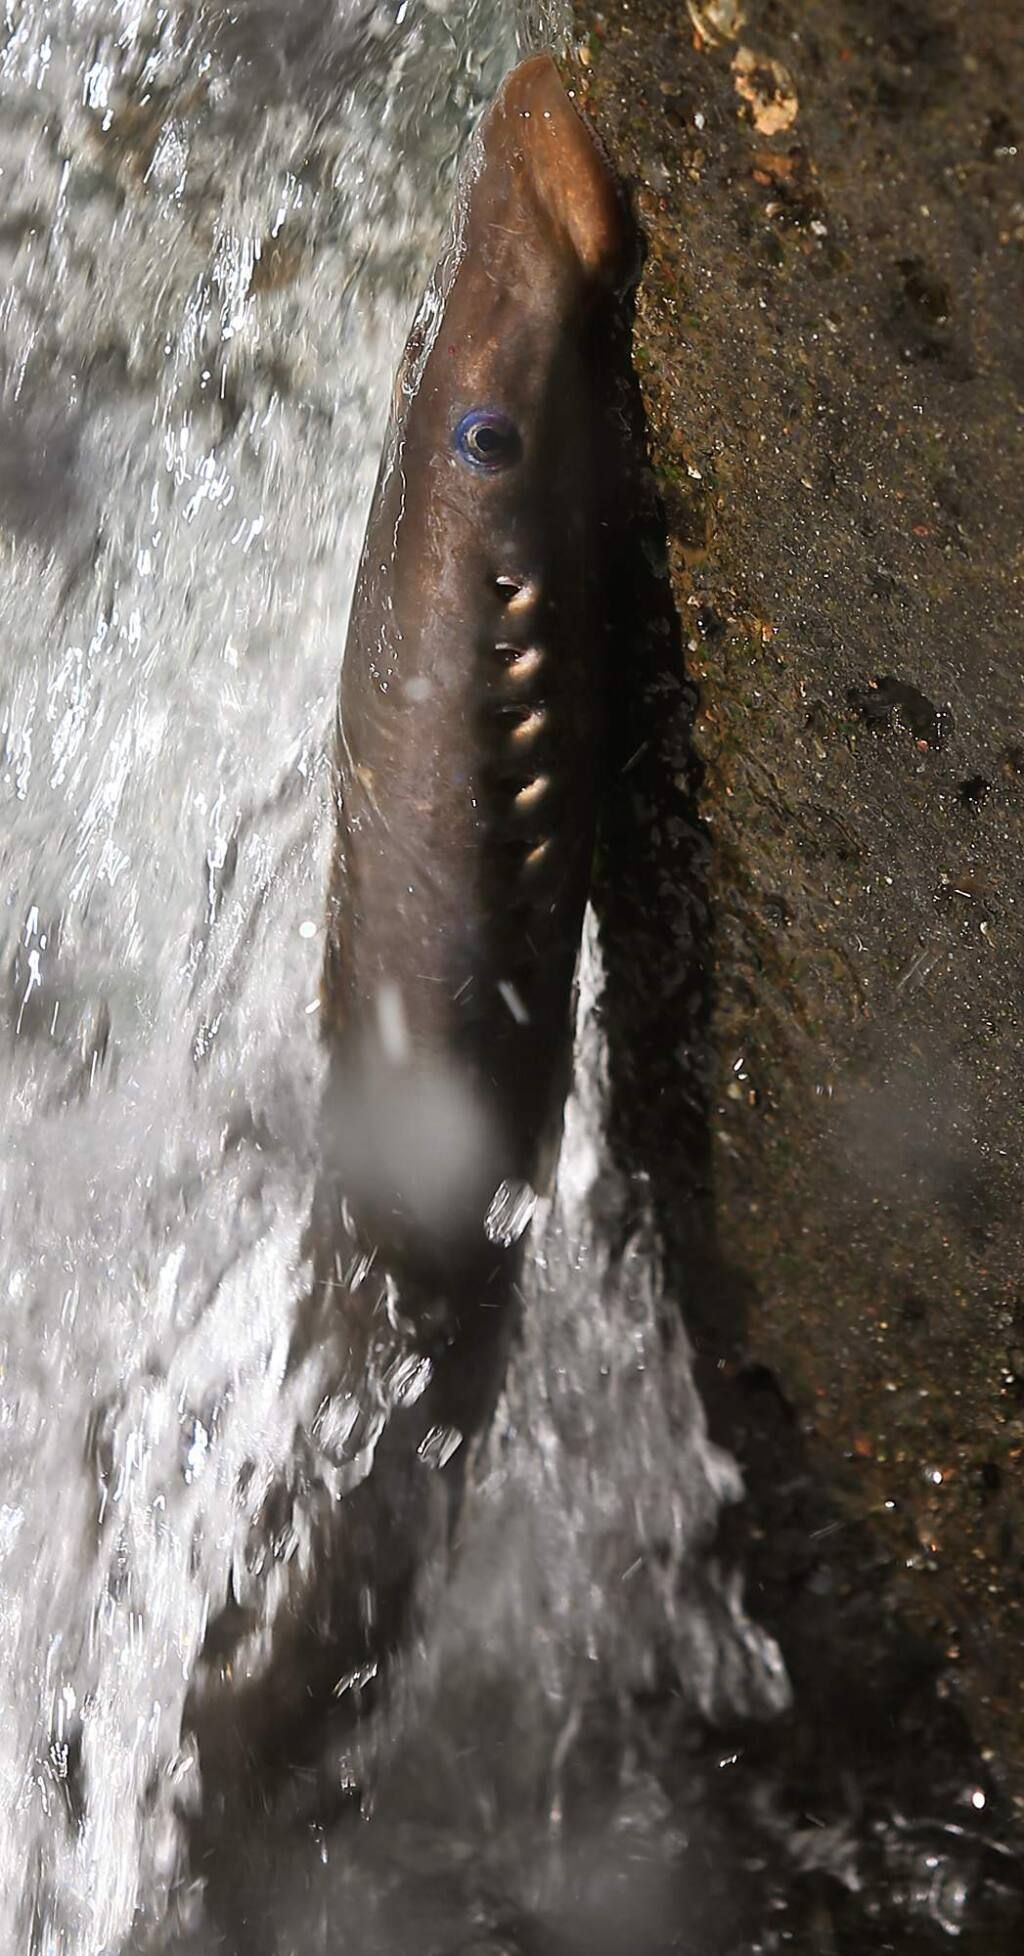 A lamprey clings to the side of a fish ladder at the Cape Horn Dam on the Eel River, Tuesday July 11, 2017 near Potter Valley. (Kent Porter / The Press Democrat) 2017